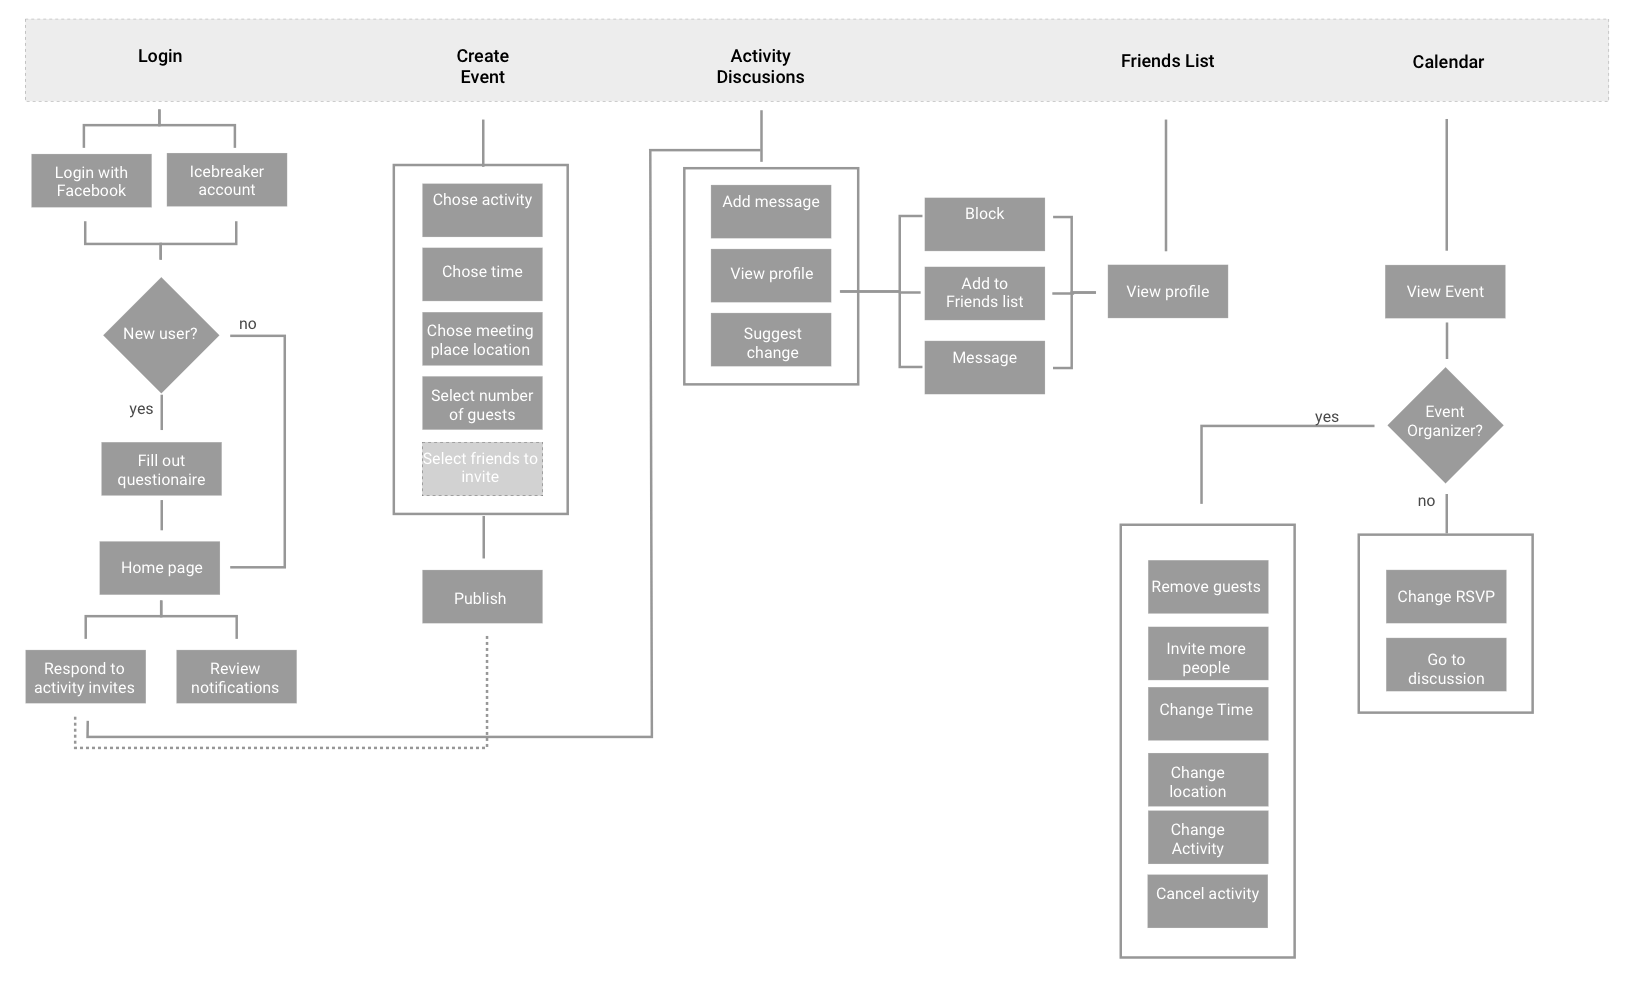 Current interaction flow for the application